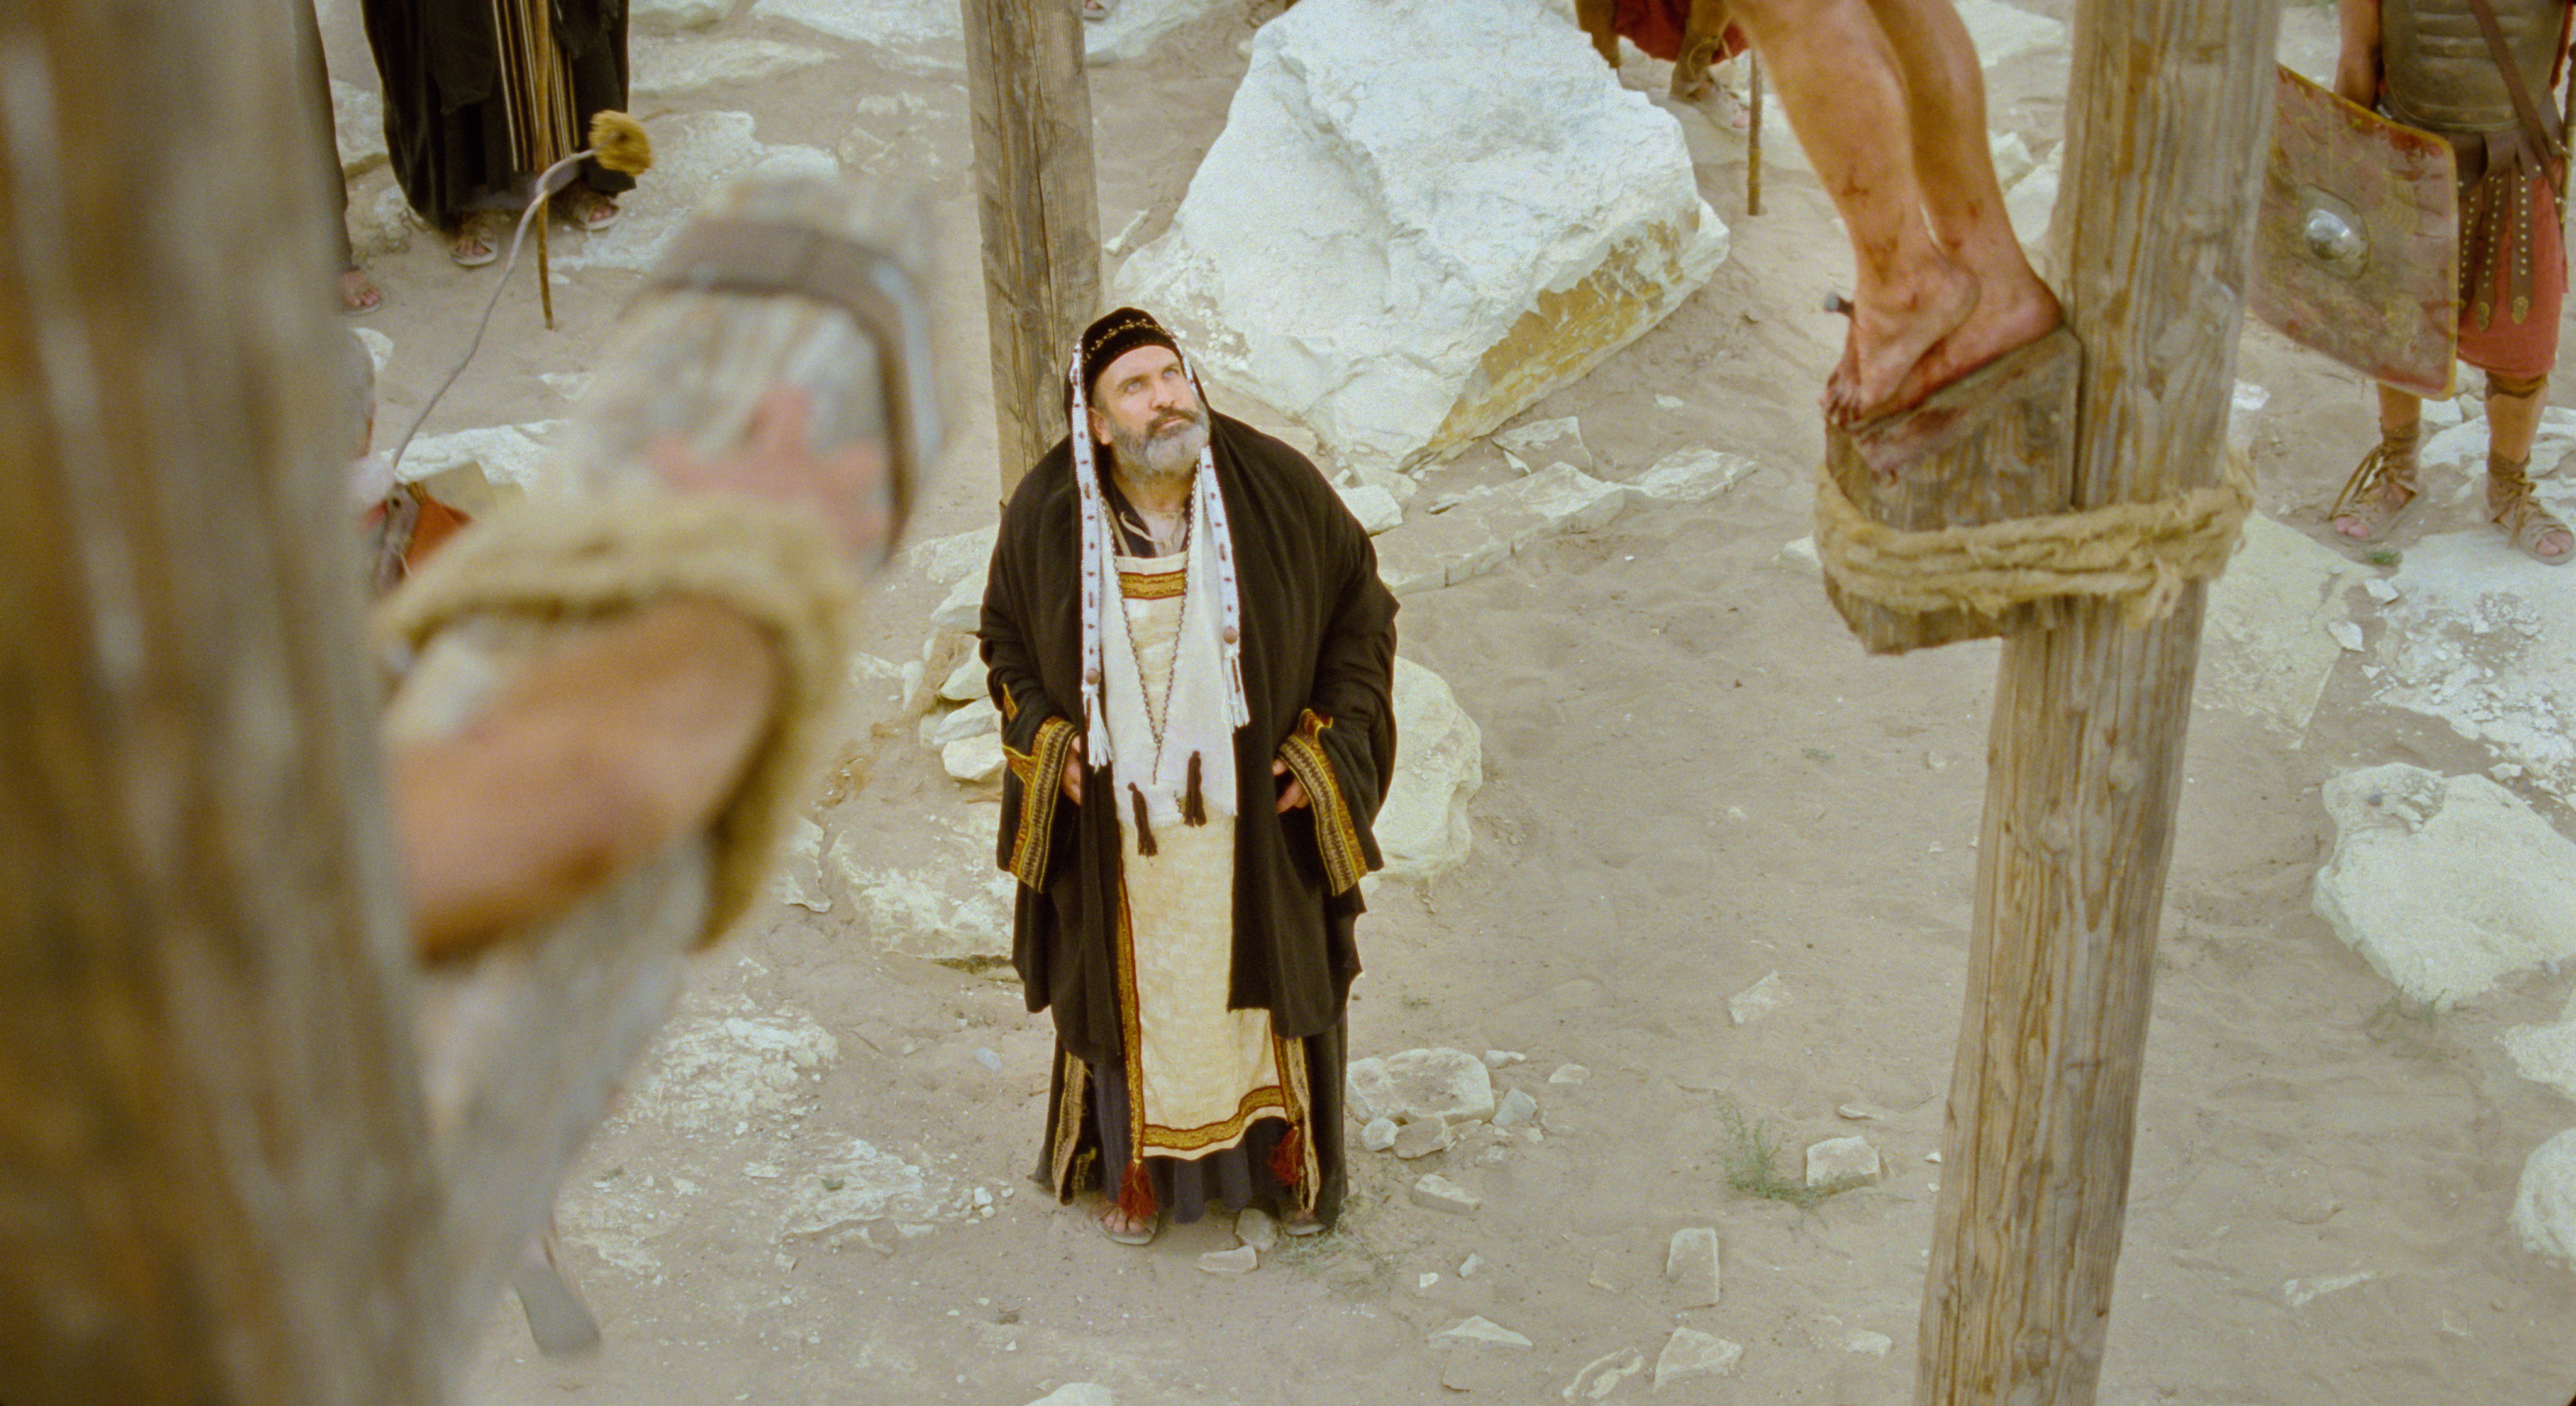 Caiaphas looks upon the Savior, who is hanging on the cross.